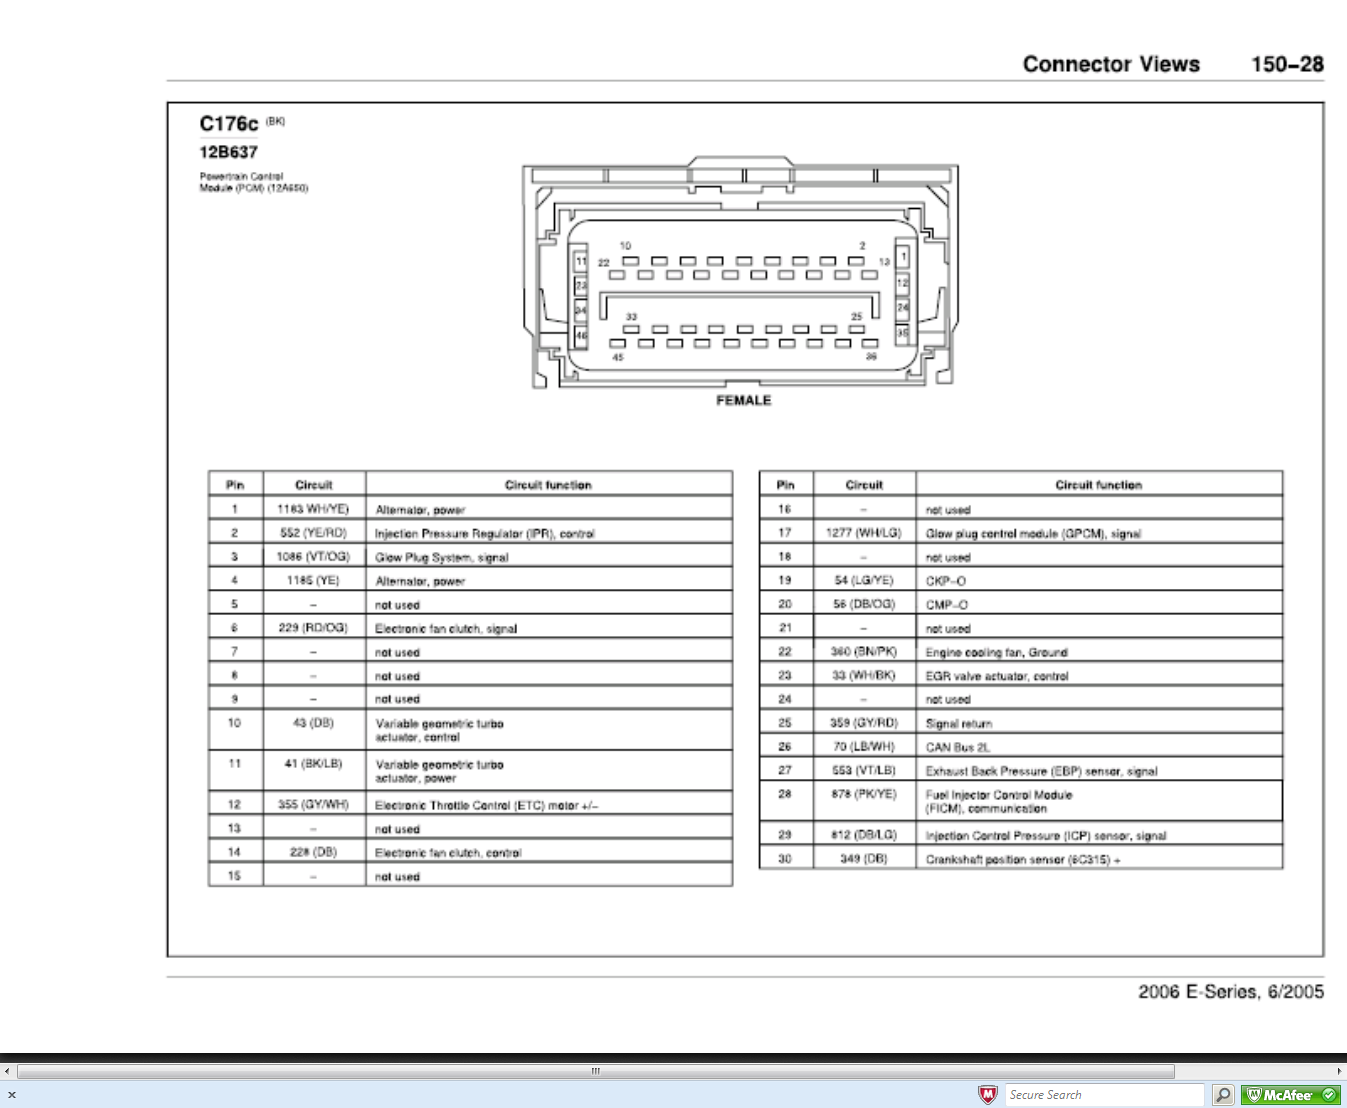 E D moreover Hqdefault additionally Fuse Panel Diagram Ford E Ford Free Wiring Diagrams Inside Ford E Fuse Box Diagram besides Wiring Diagram For Ford E Transit Bus furthermore Maxresdefault. on ford e 350 wiring diagram